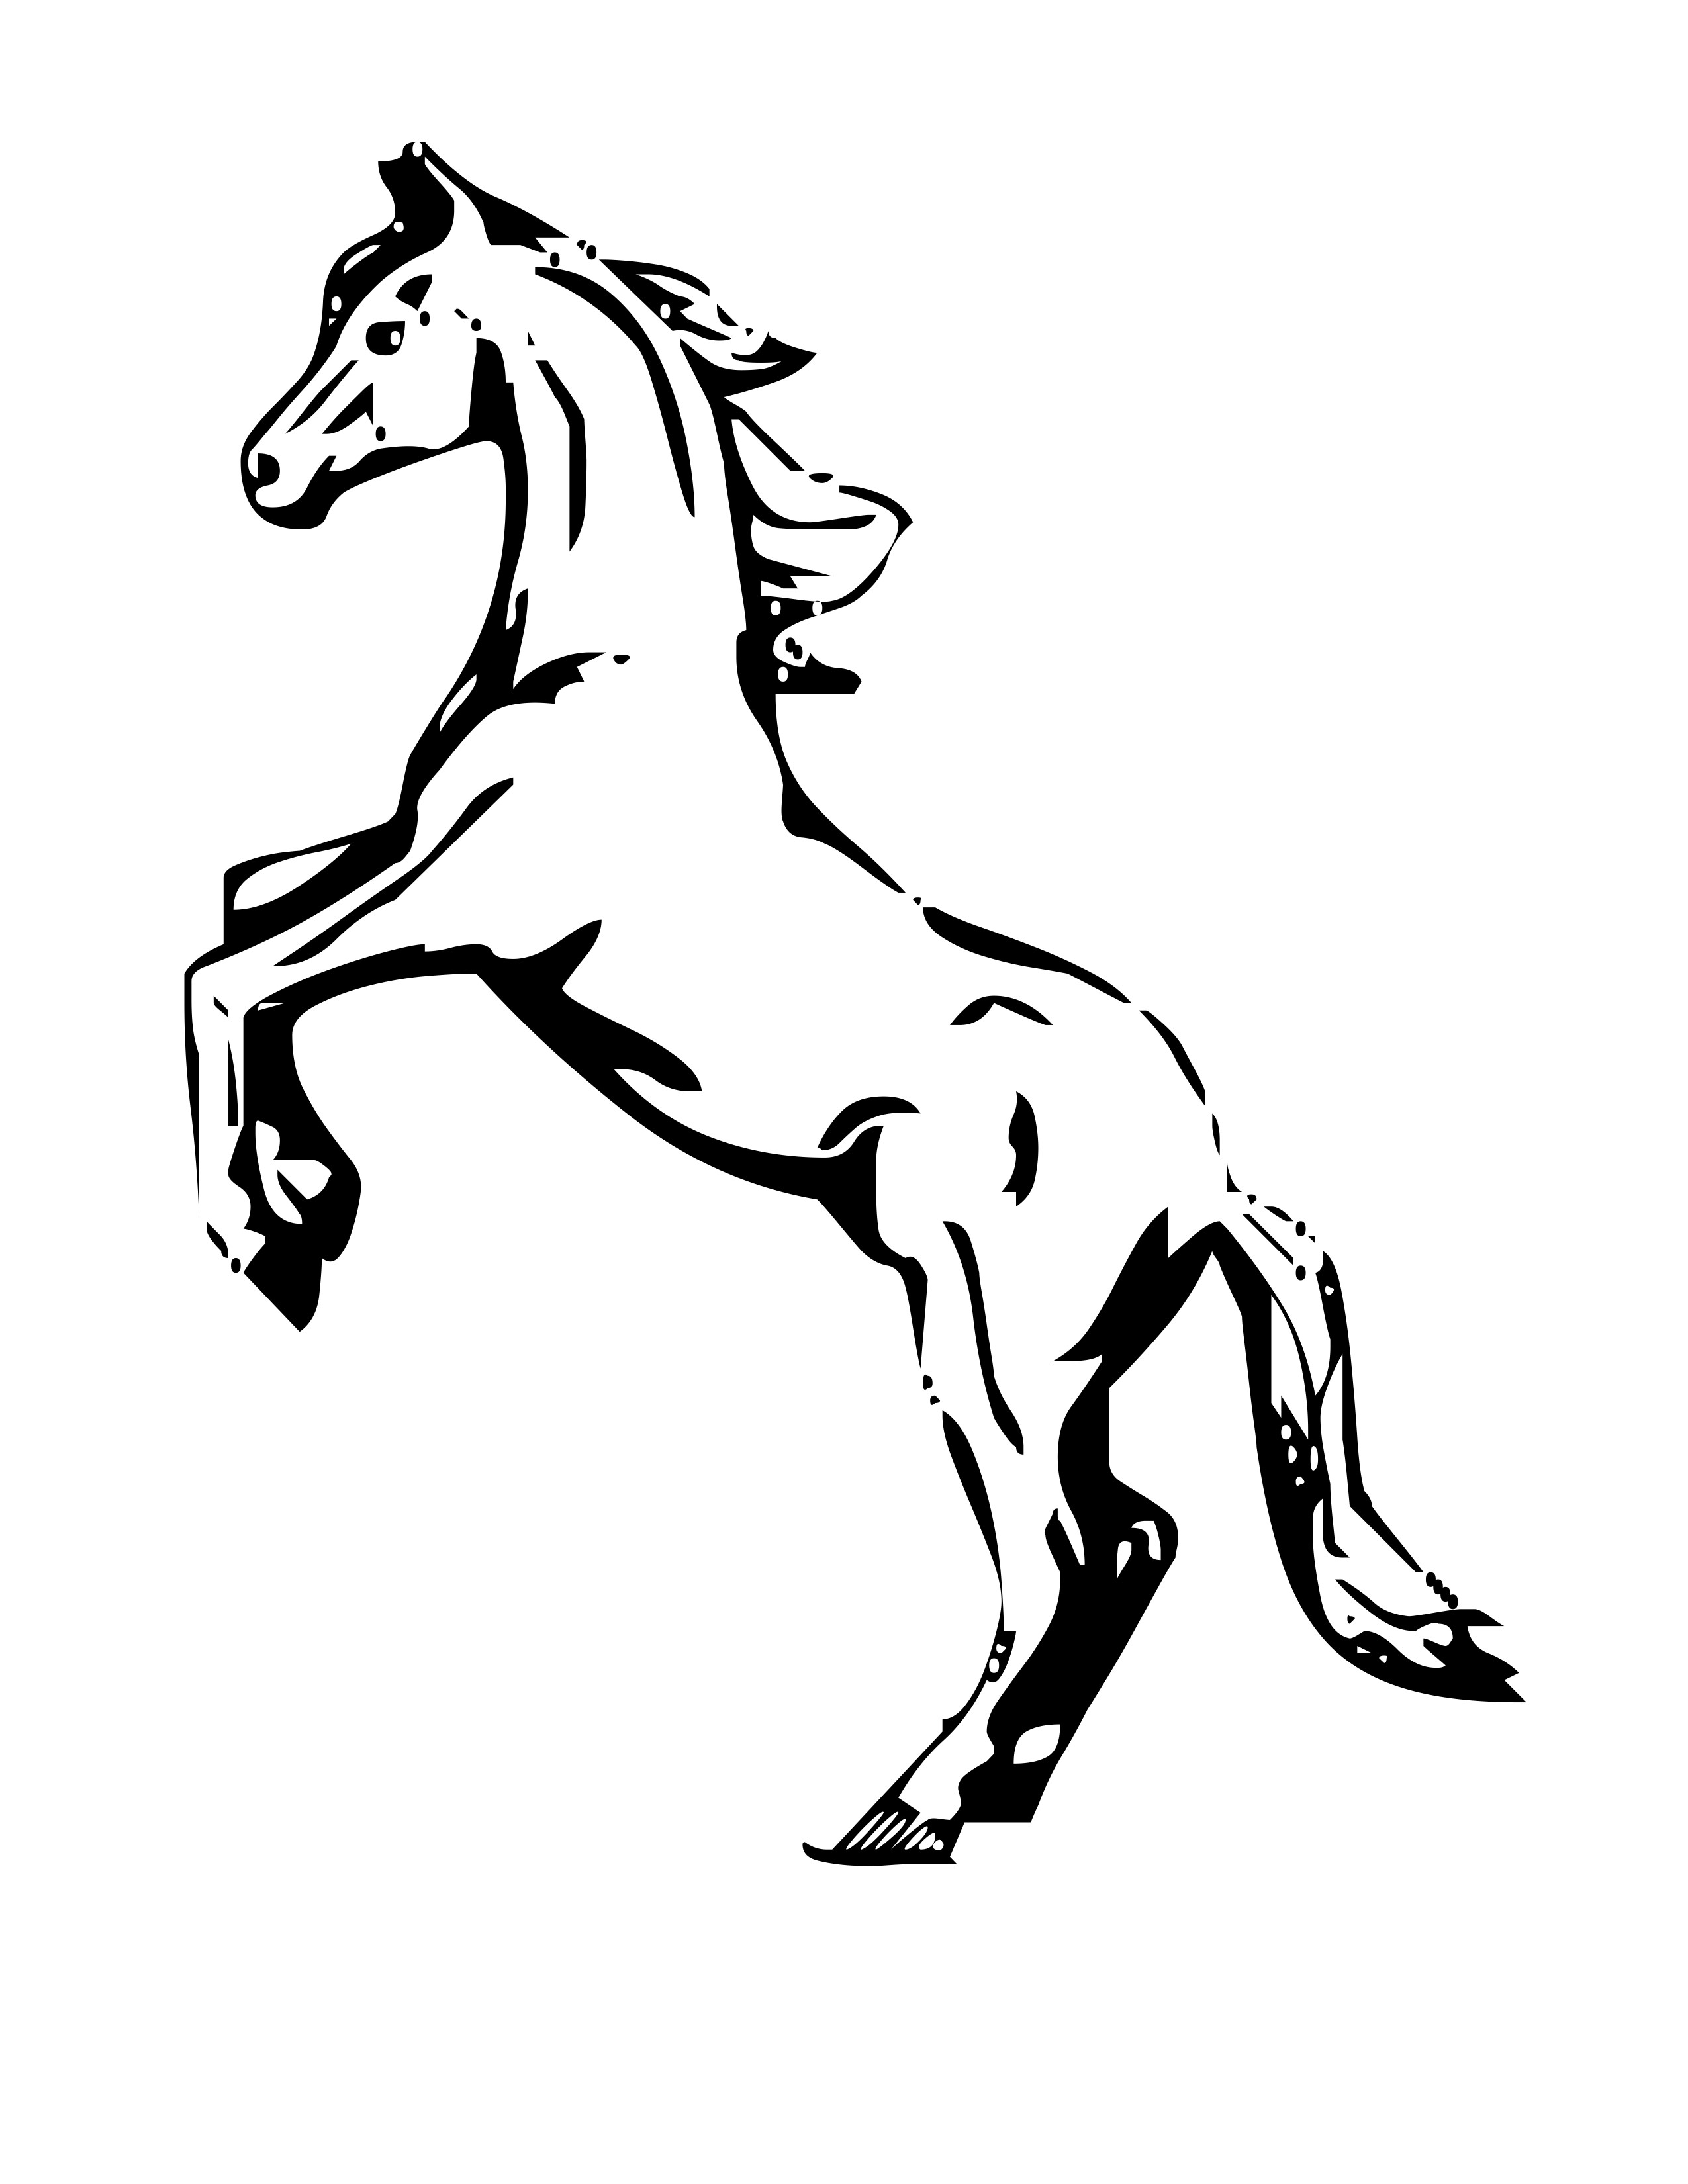 pictures of horses to colour in free horse coloring pages pictures in colour horses to of